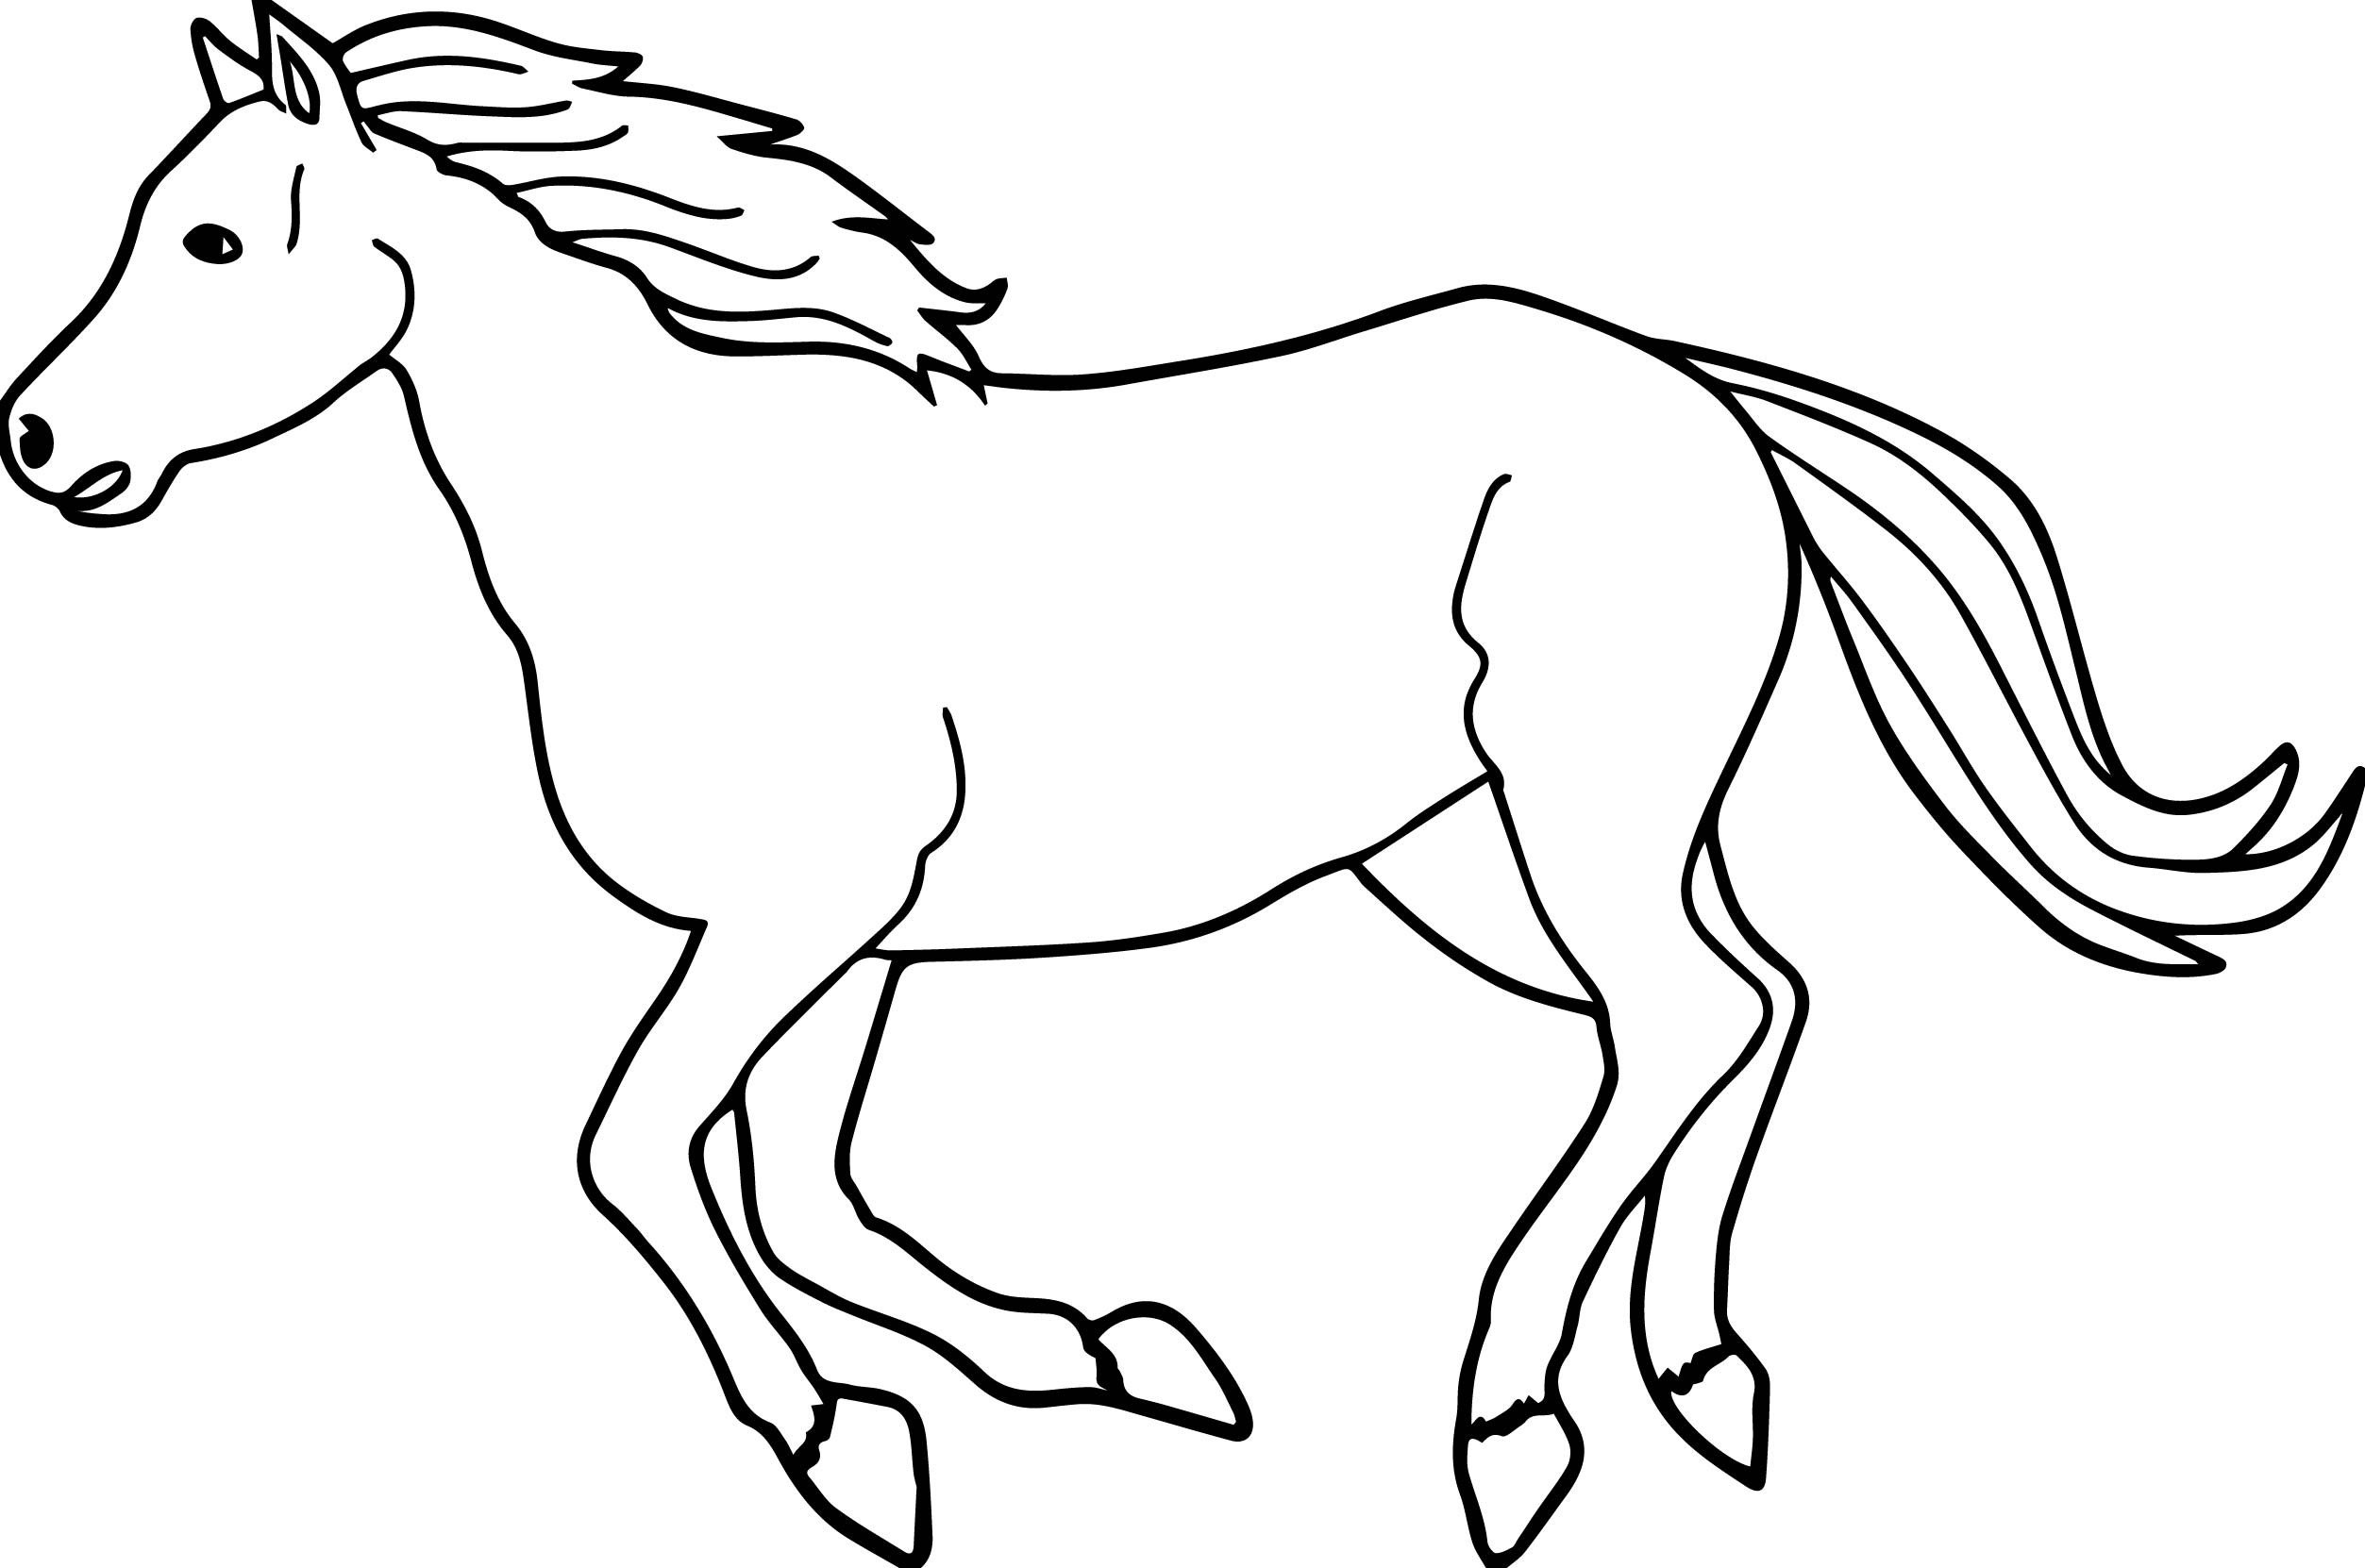 2506x1662 Arabian Horse Coloring Pages Elegant Clydesdale Horse Coloring